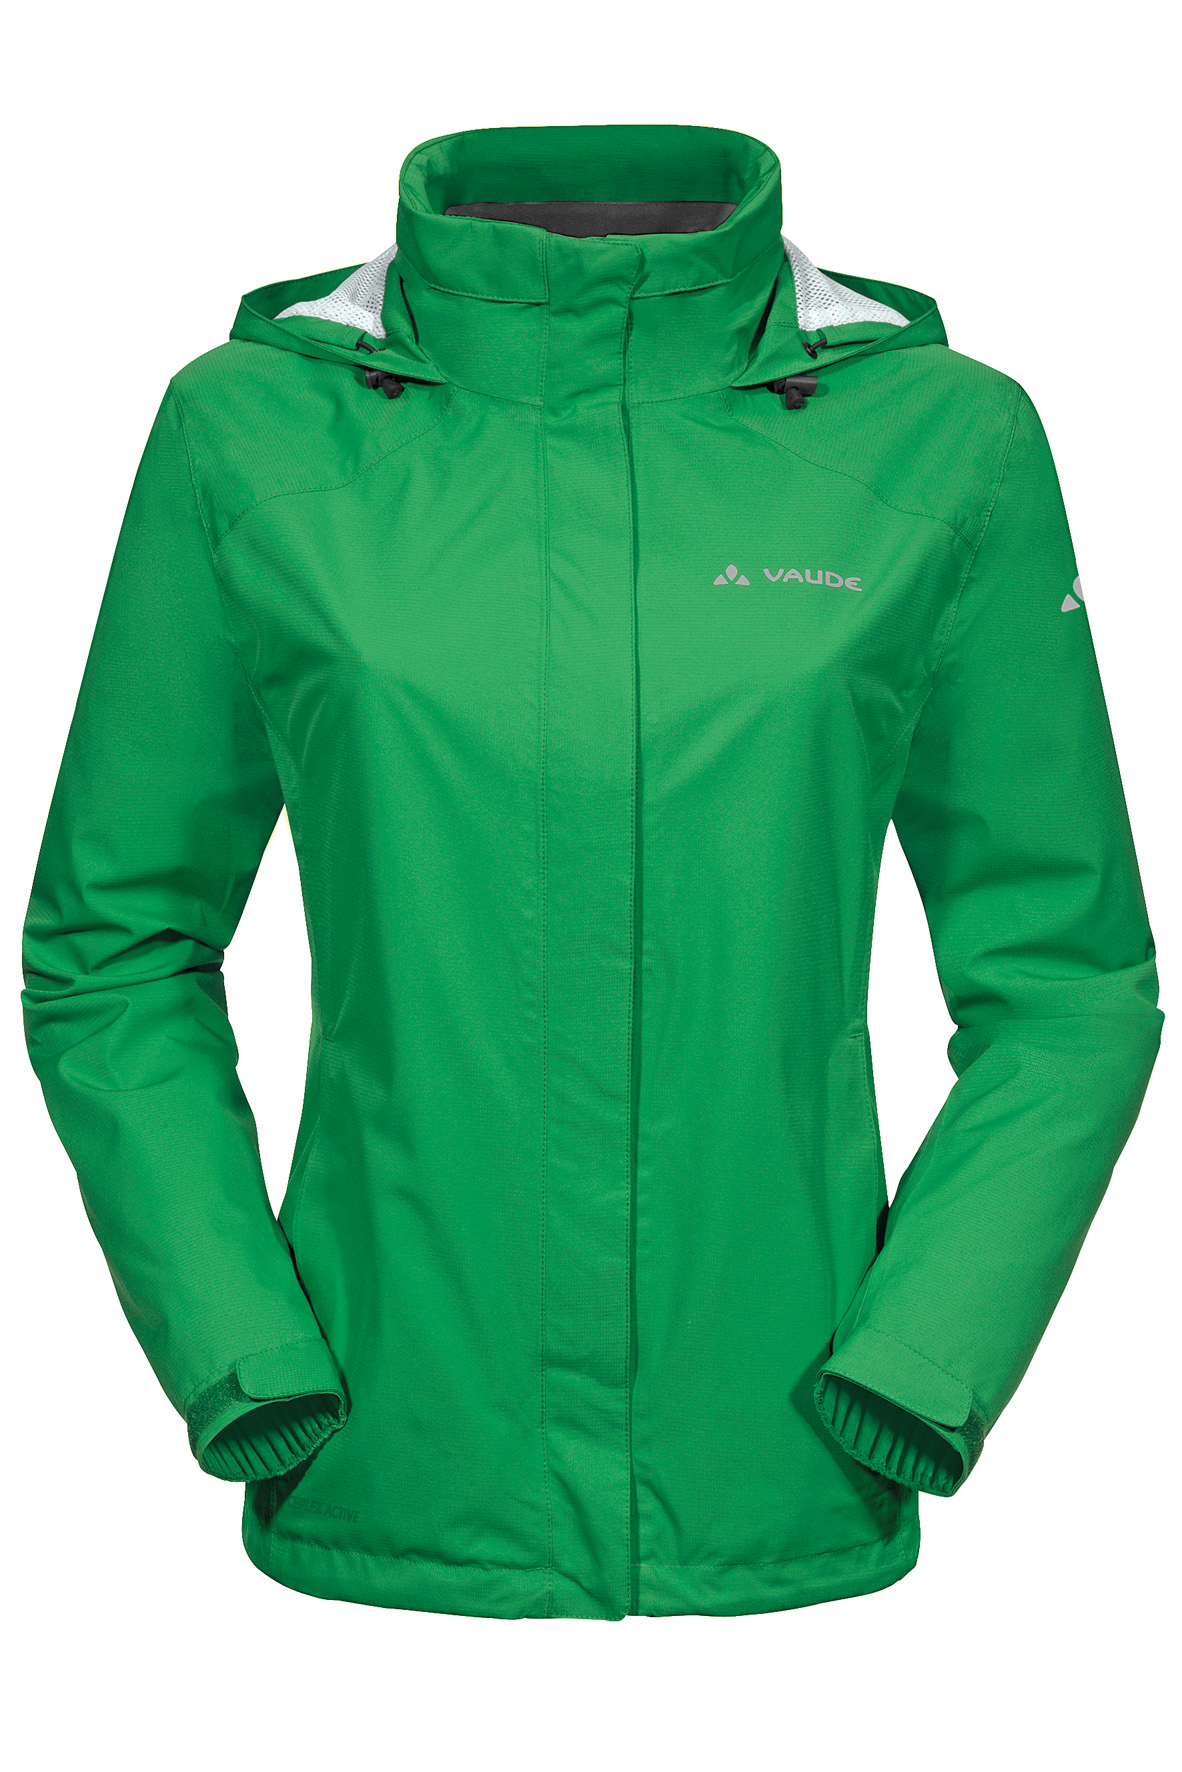 VAUDE Women´s Escape Bike Light Jacket grasshopper Größe 38 - schneider-sports